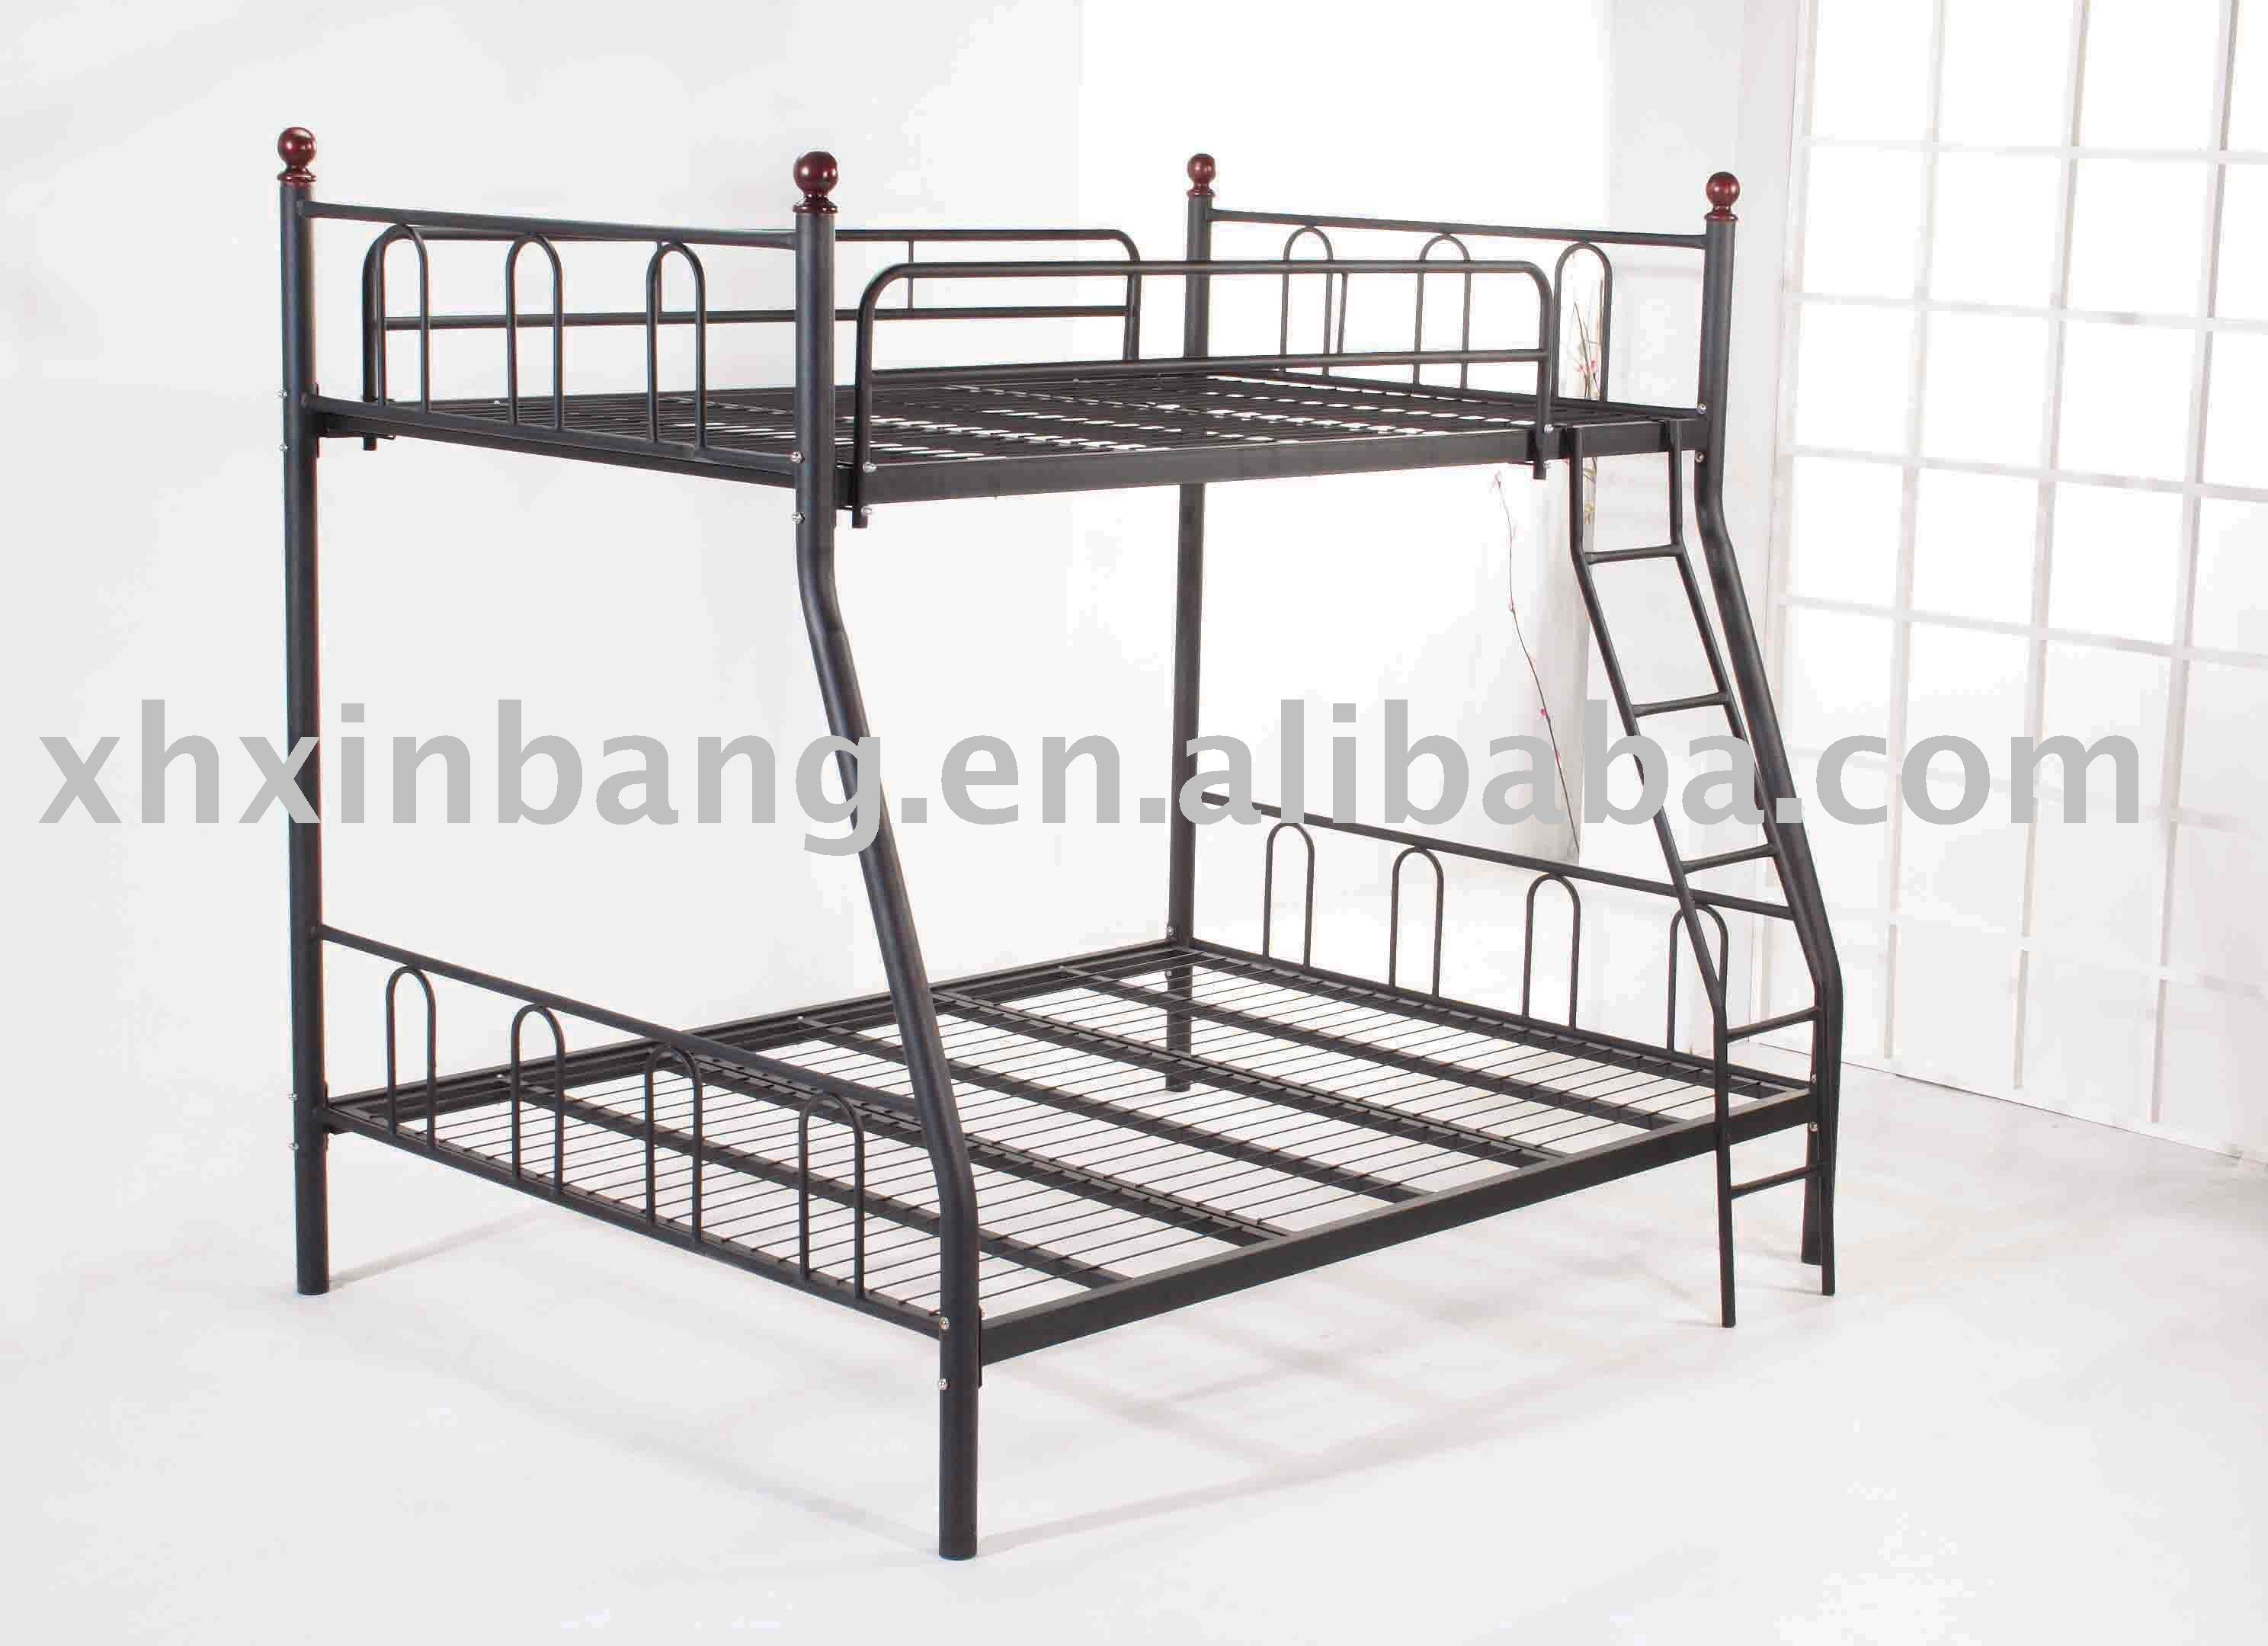 Steel double deck bed - Stainless Steel Bunk Beds Stainless Steel Bunk Beds Suppliers And Manufacturers At Alibaba Com